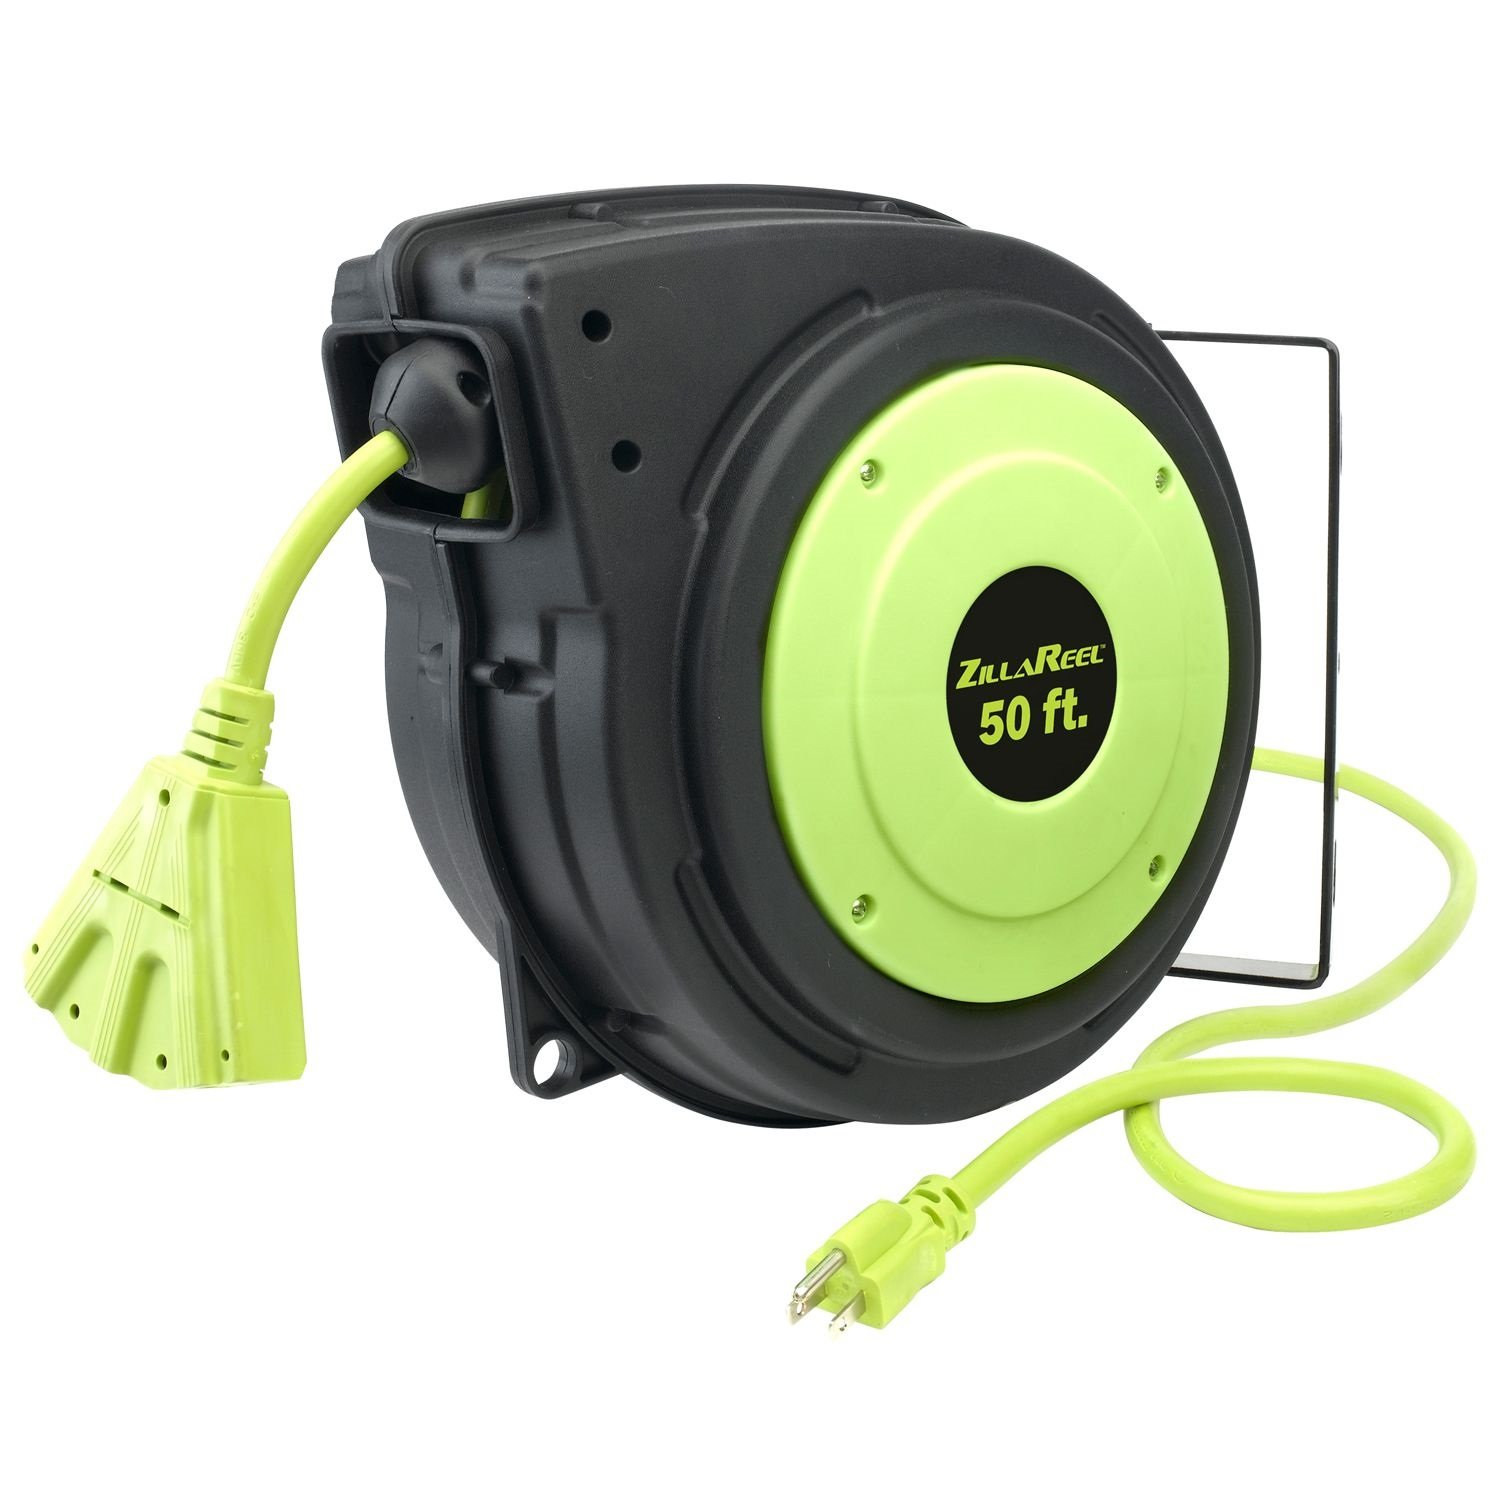 50' Retractable Cord Reel by Branco